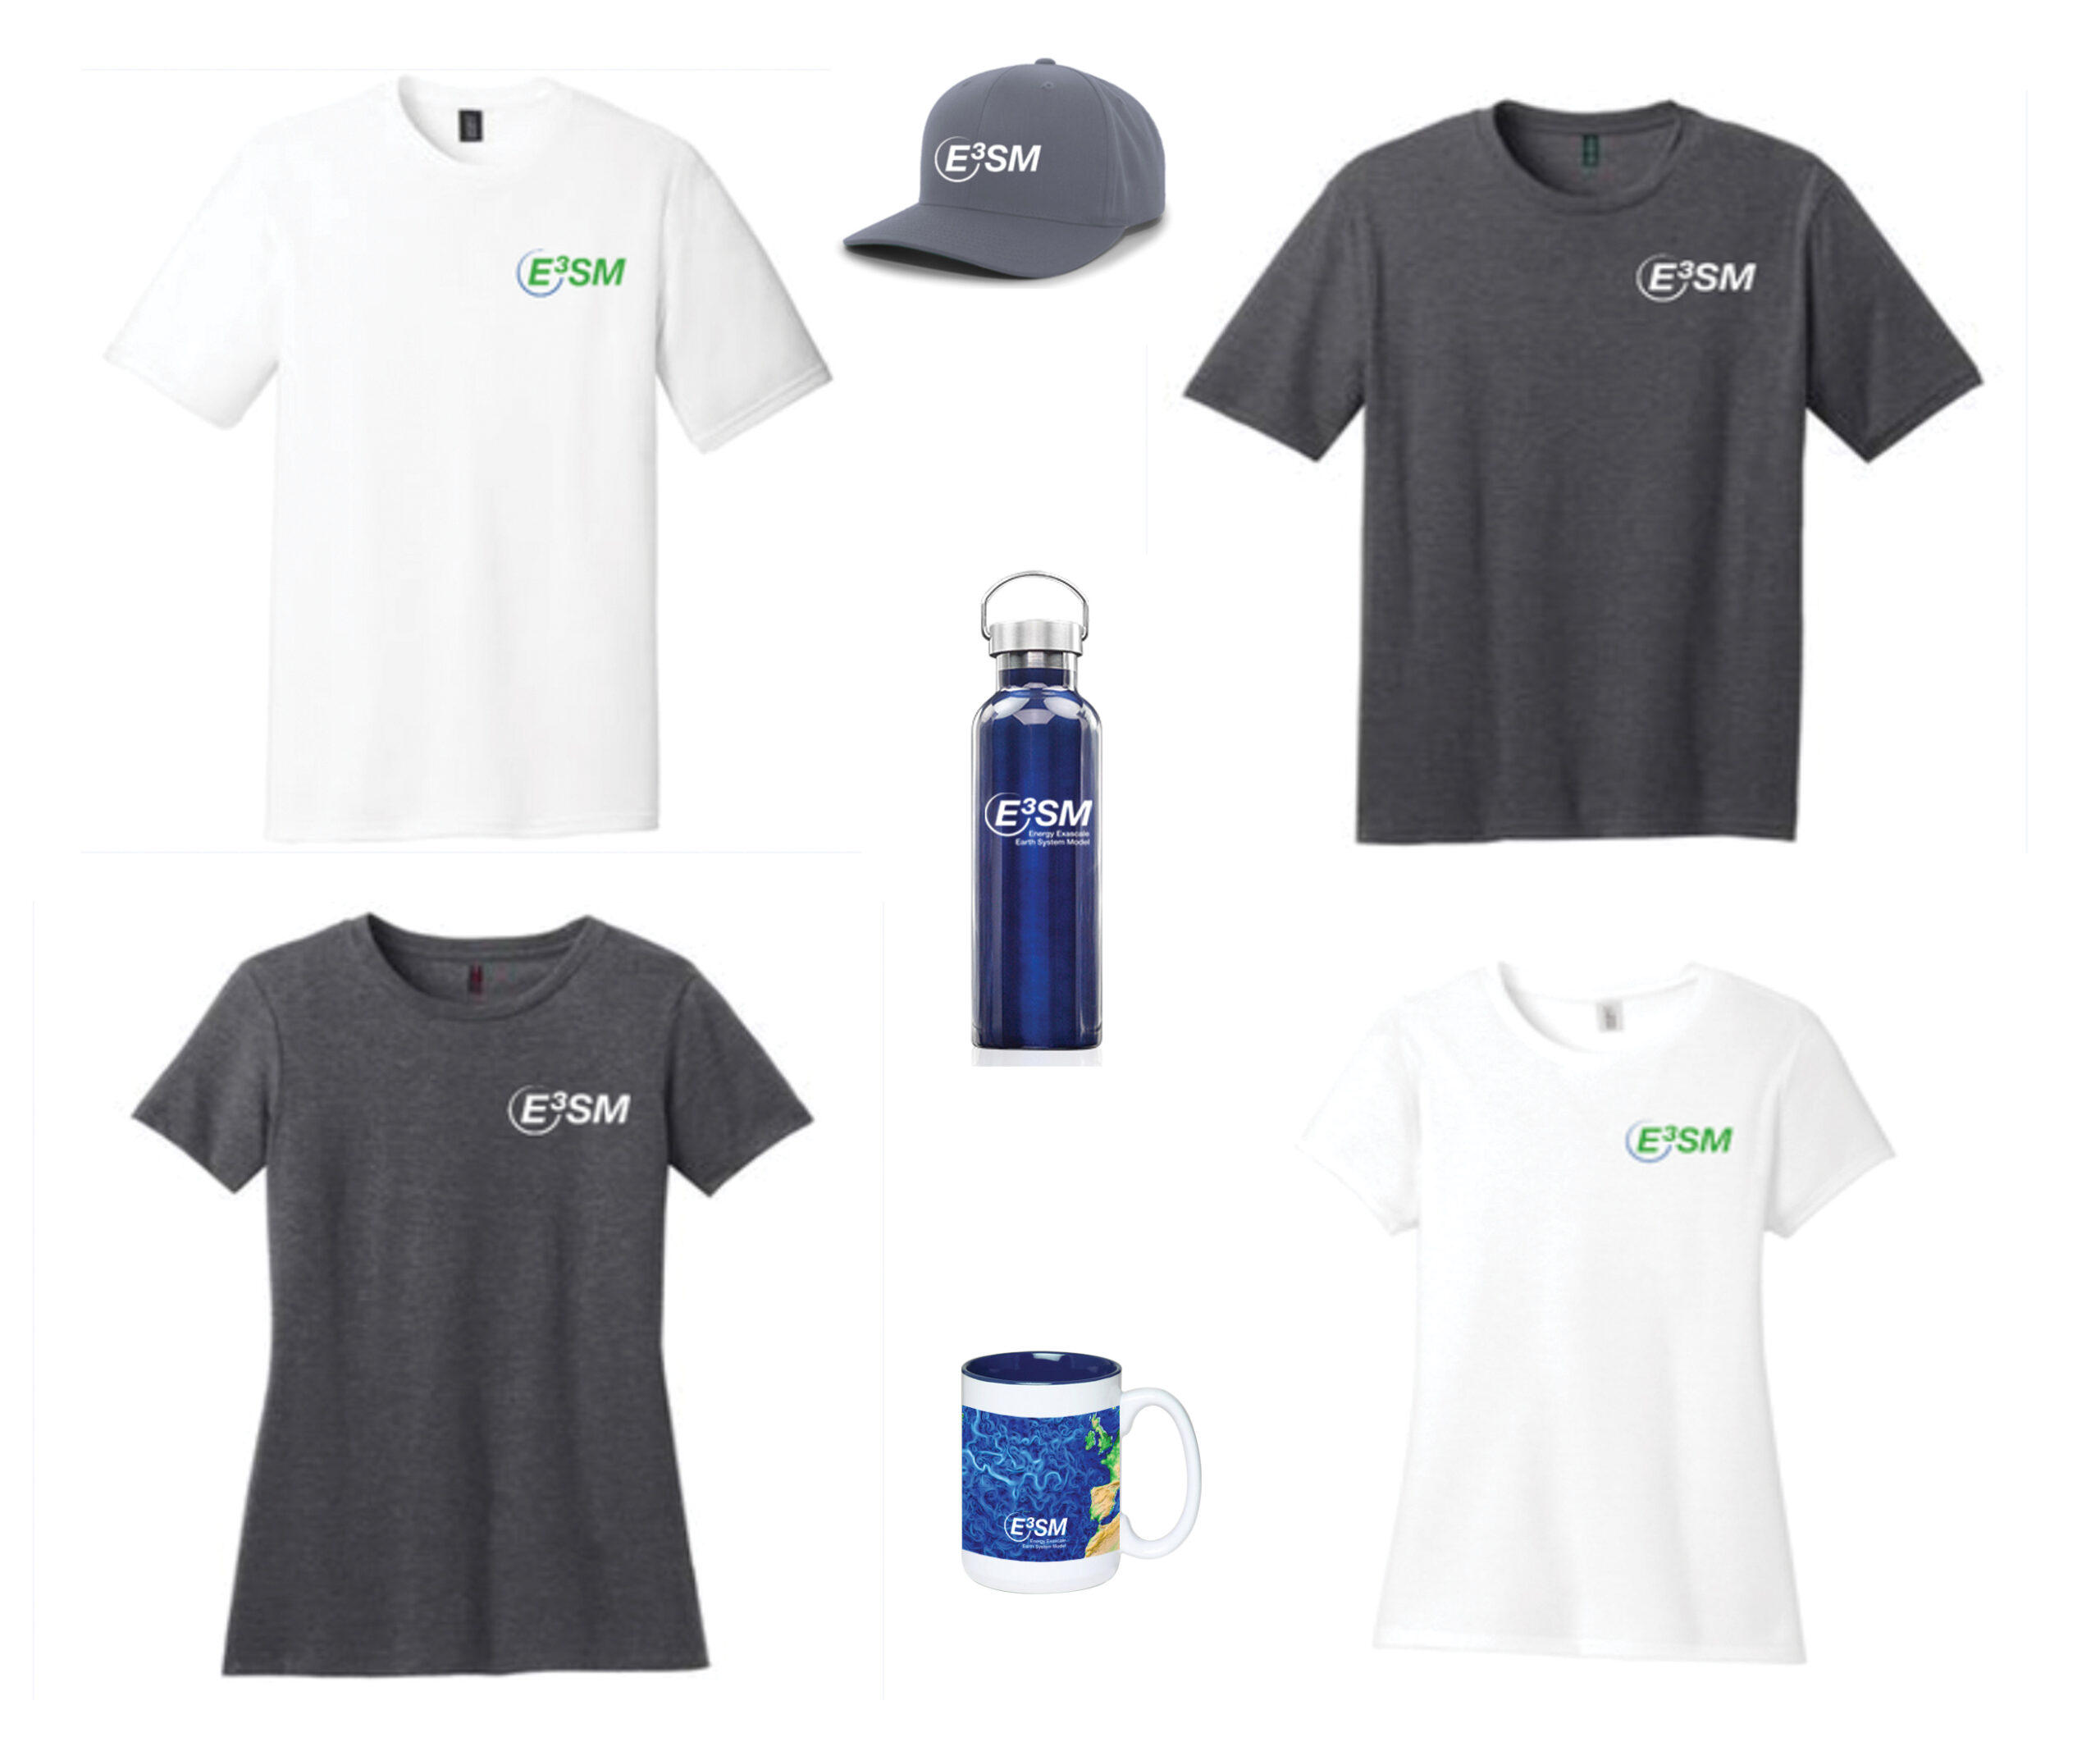 Image of E3SM t-shirts and accessories